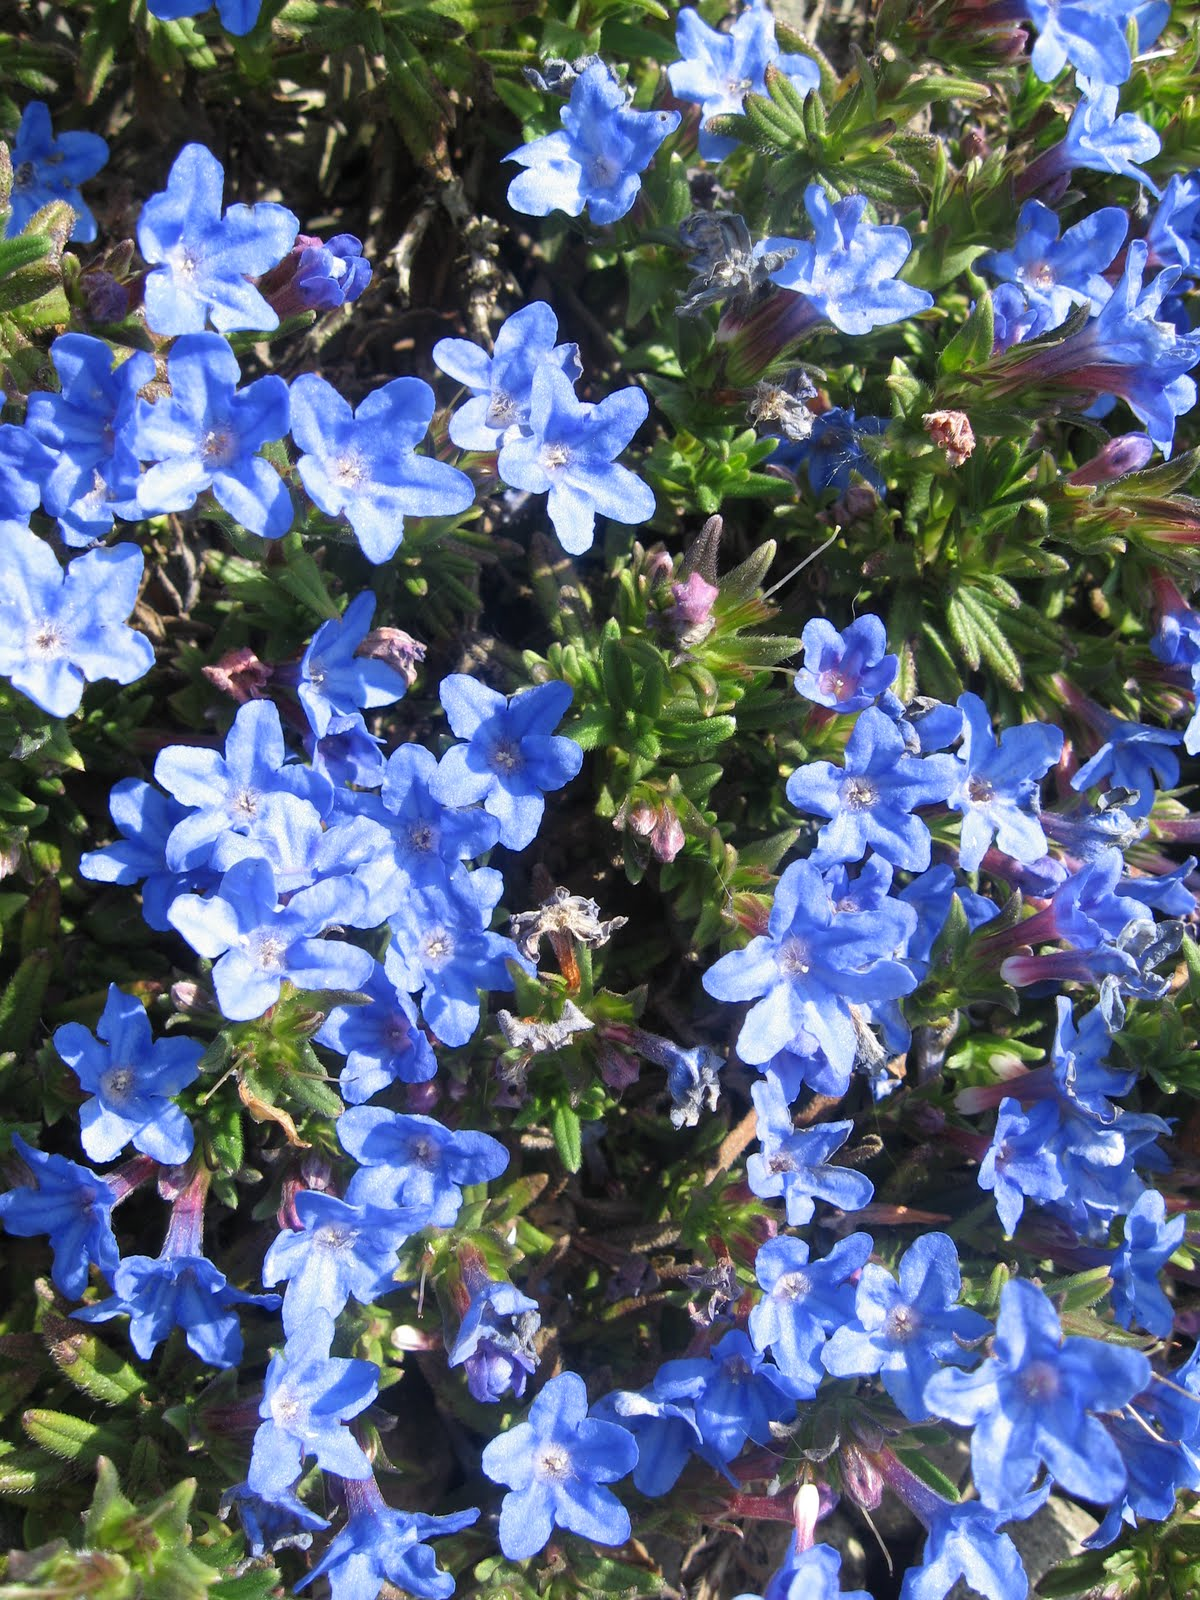 Displaying 17 gt images for blue and white flower names